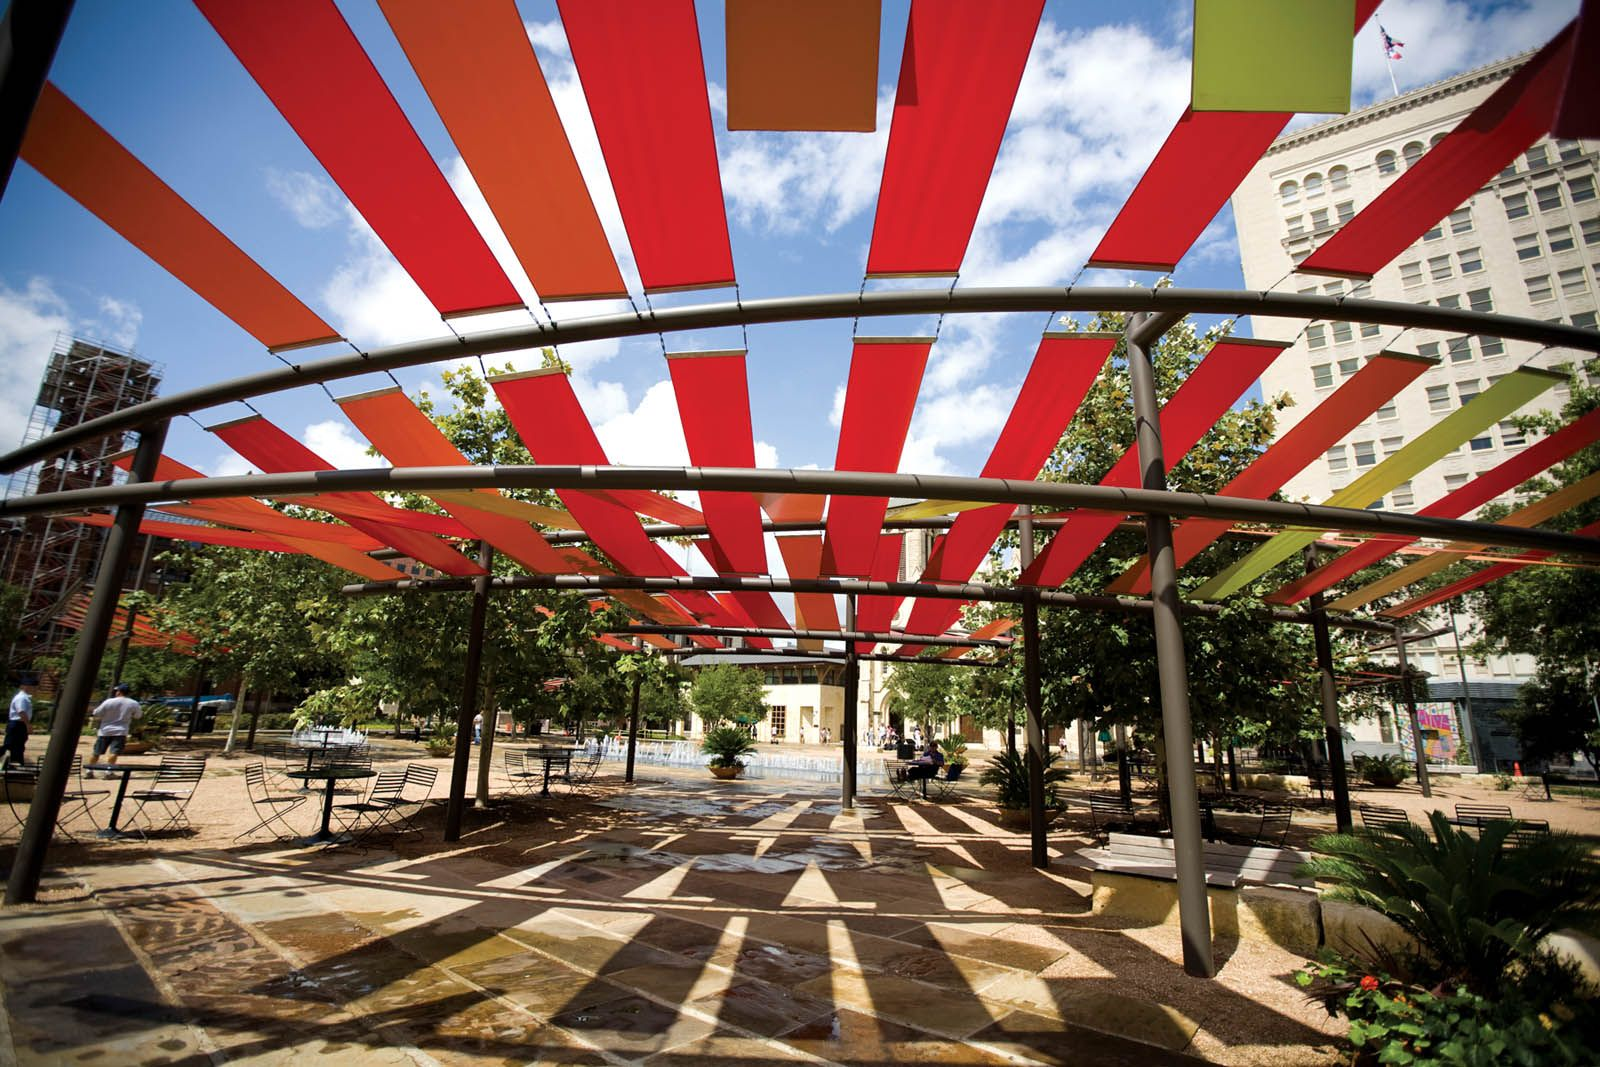 The Main Plaza Landscape Renovation Was Completed In 2007 And Is Now A Heavily Programmed Public E Located Heart Of City San Antonio